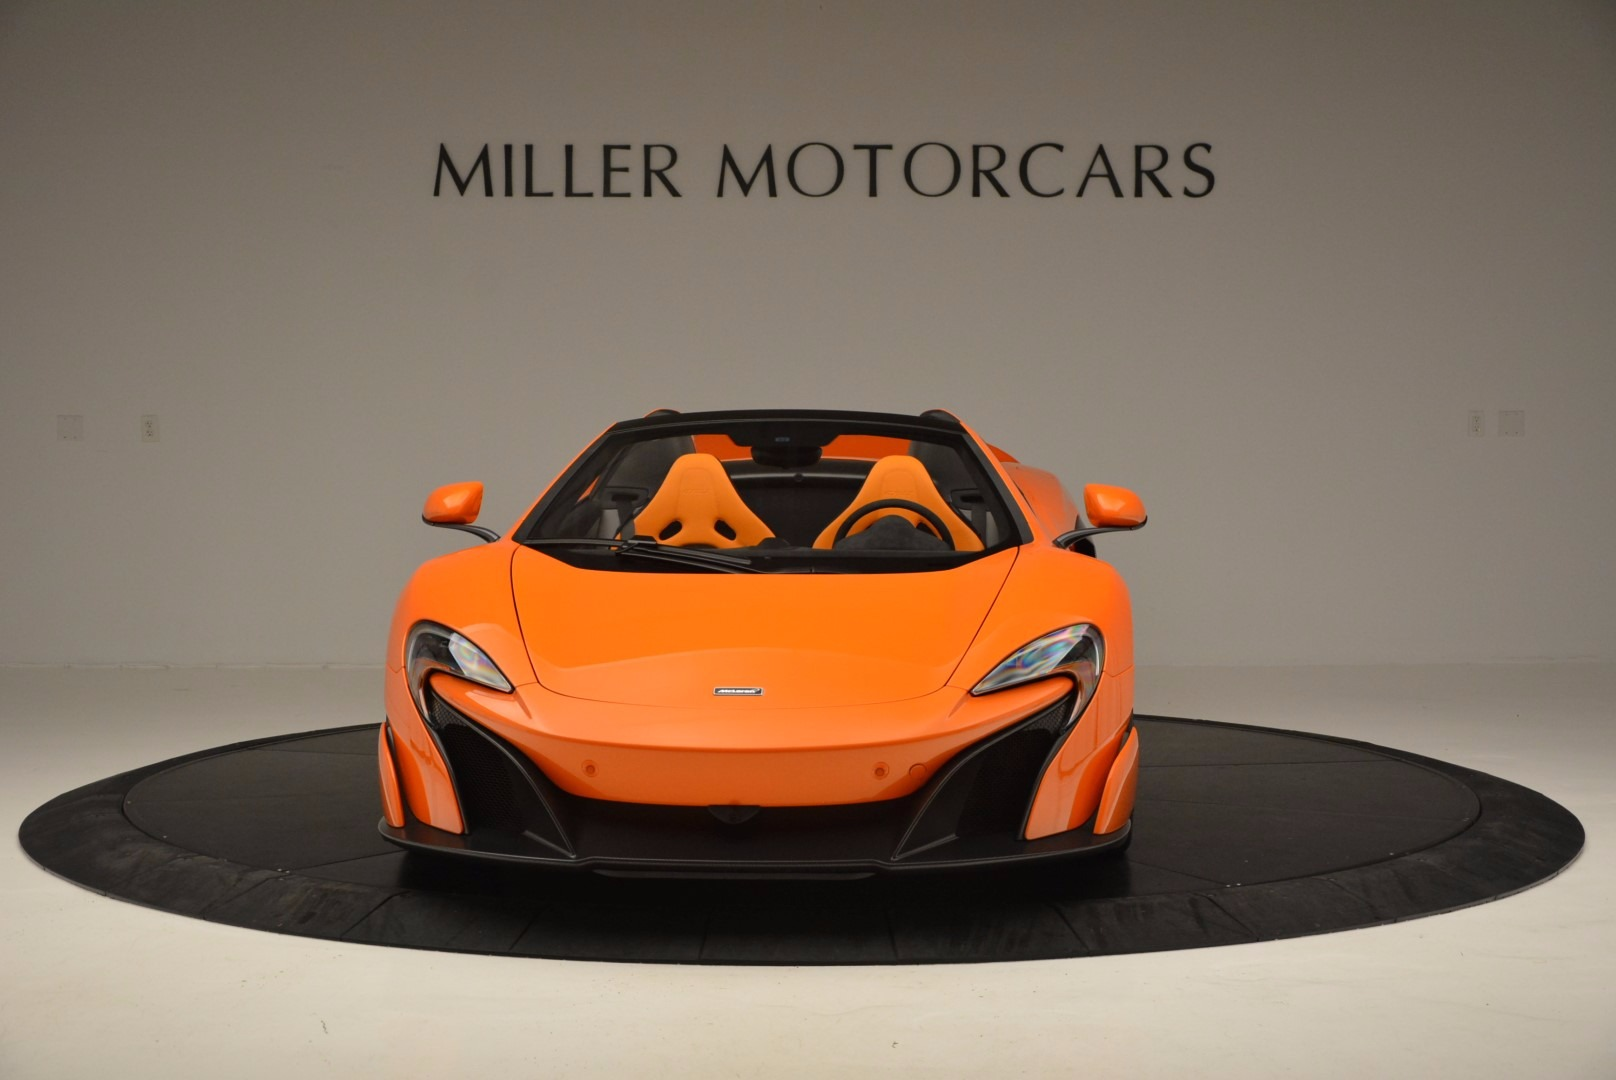 Used 2016 McLaren 675LT Spider Convertible For Sale In Greenwich, CT. Alfa Romeo of Greenwich, 3159 1150_p12